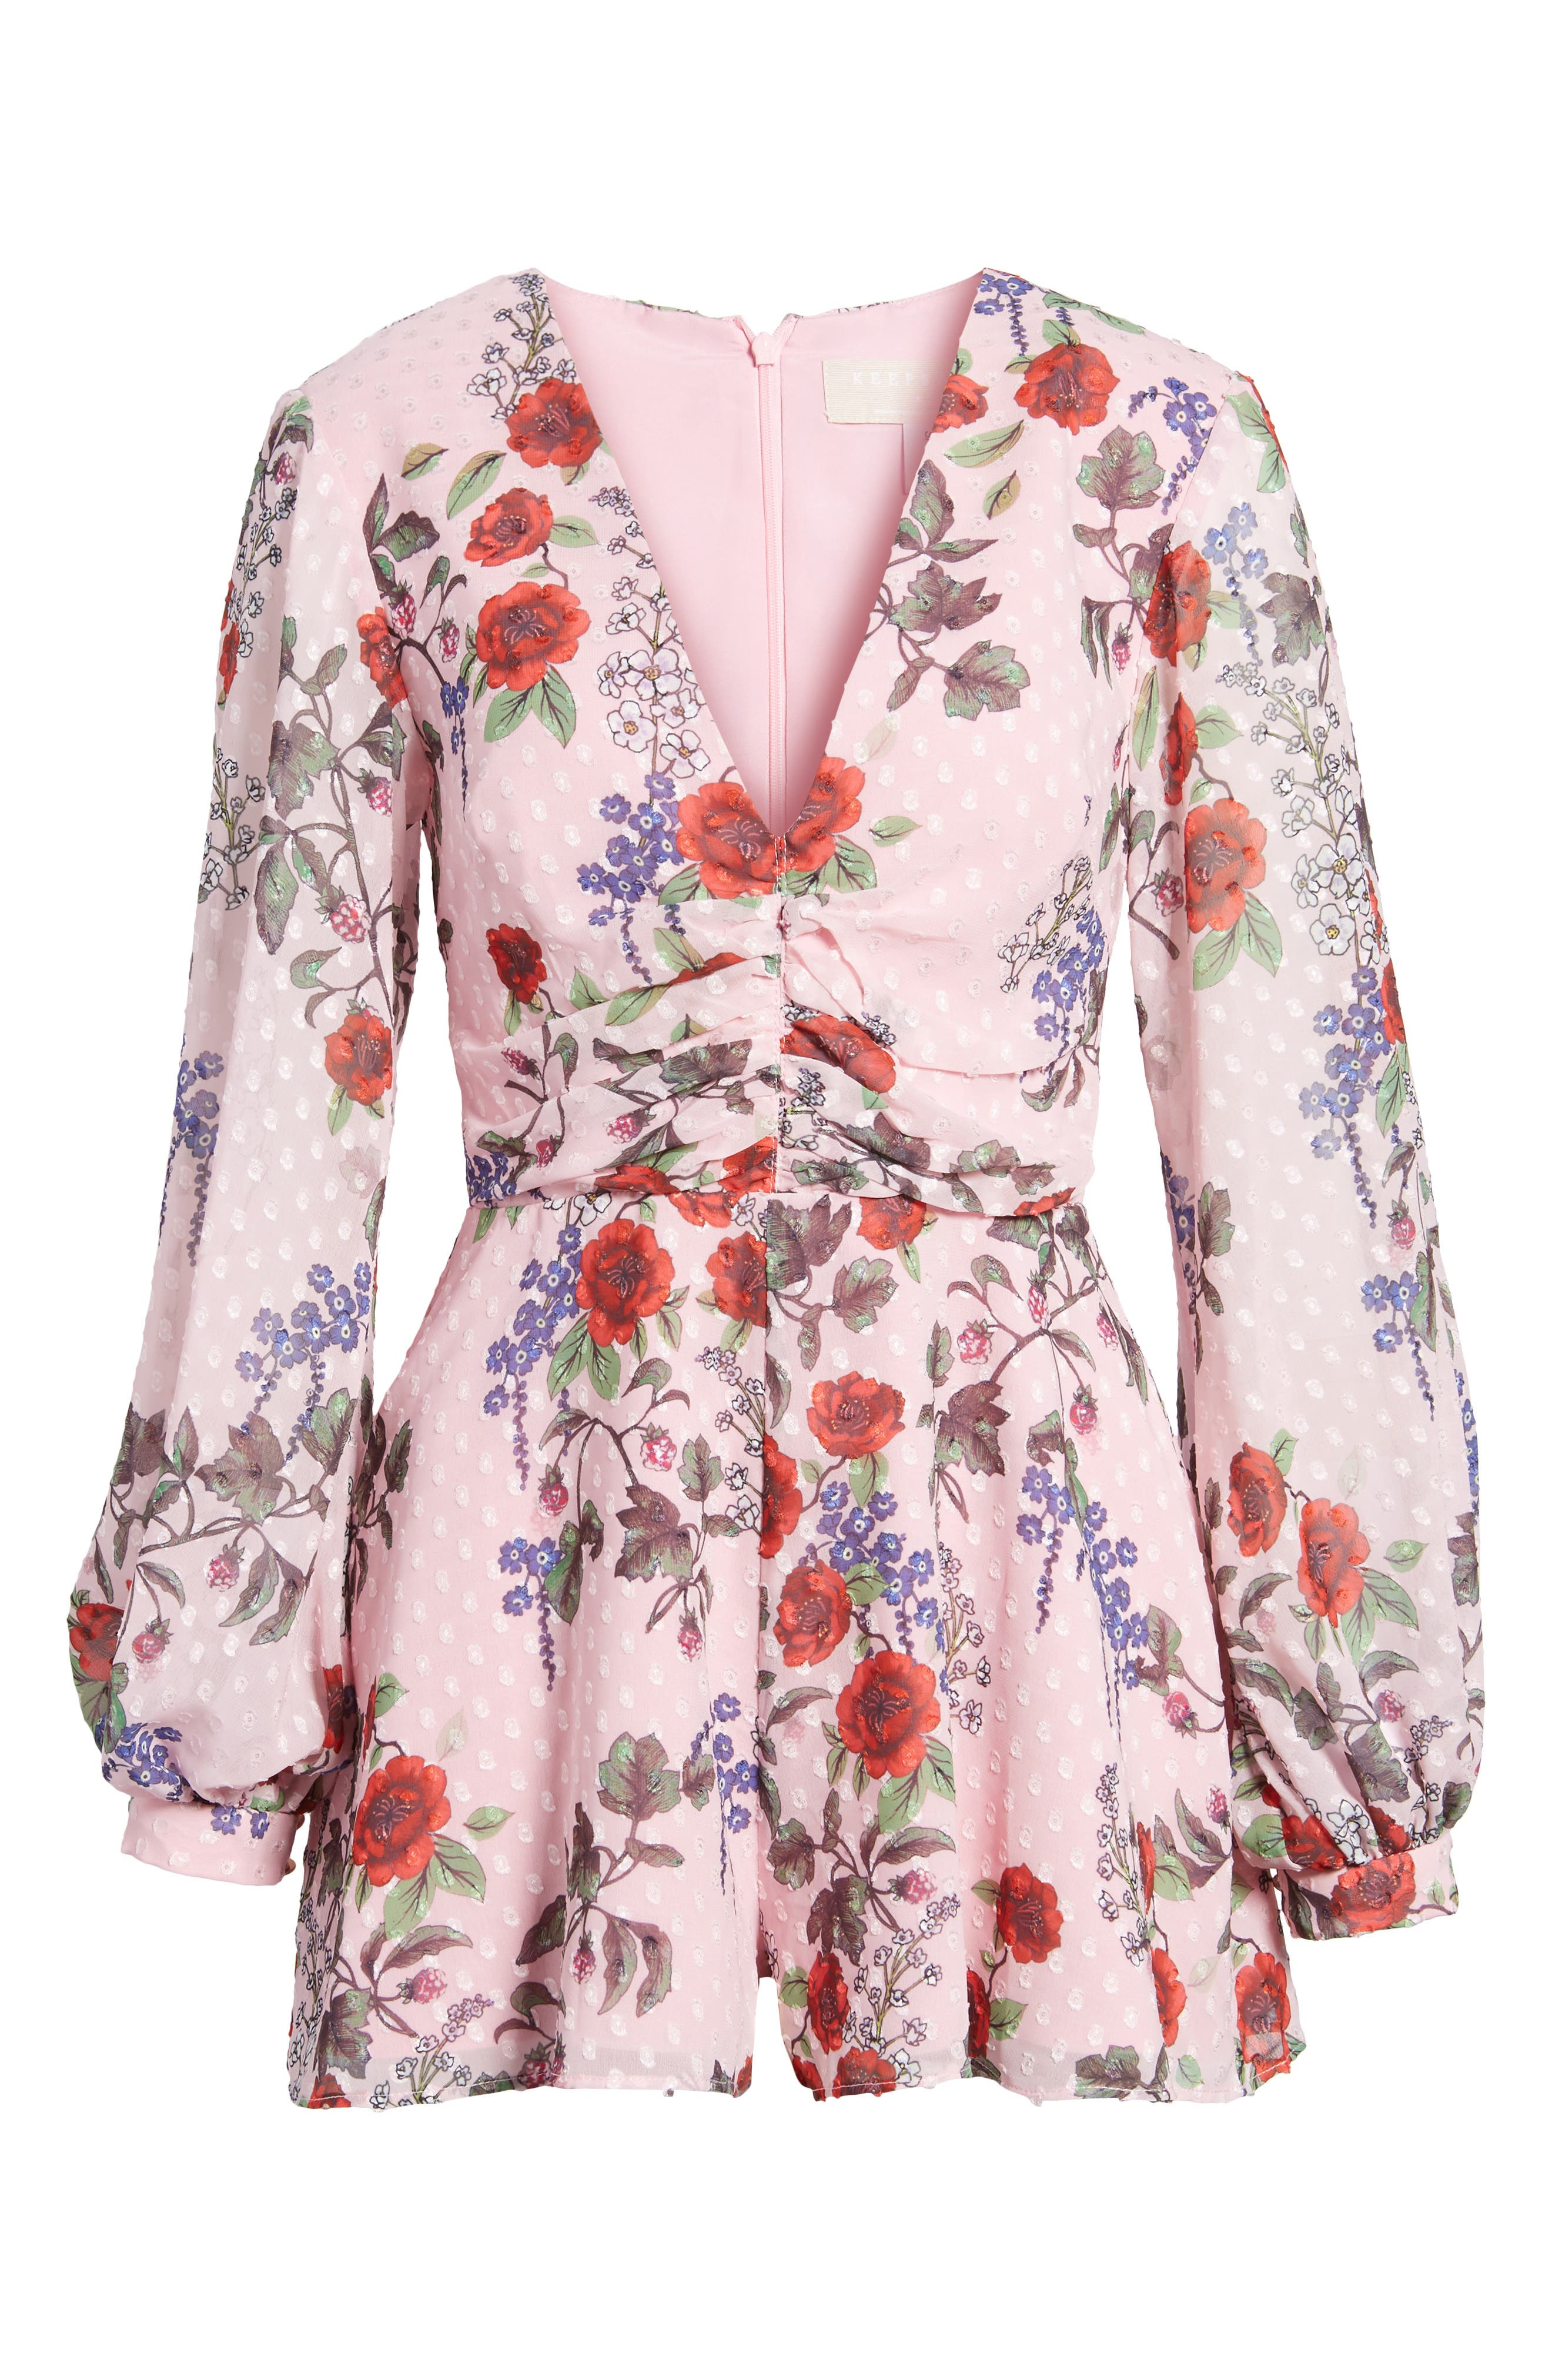 Need You Now Romper,                             Alternate thumbnail 7, color,                             Powder Pink Floral